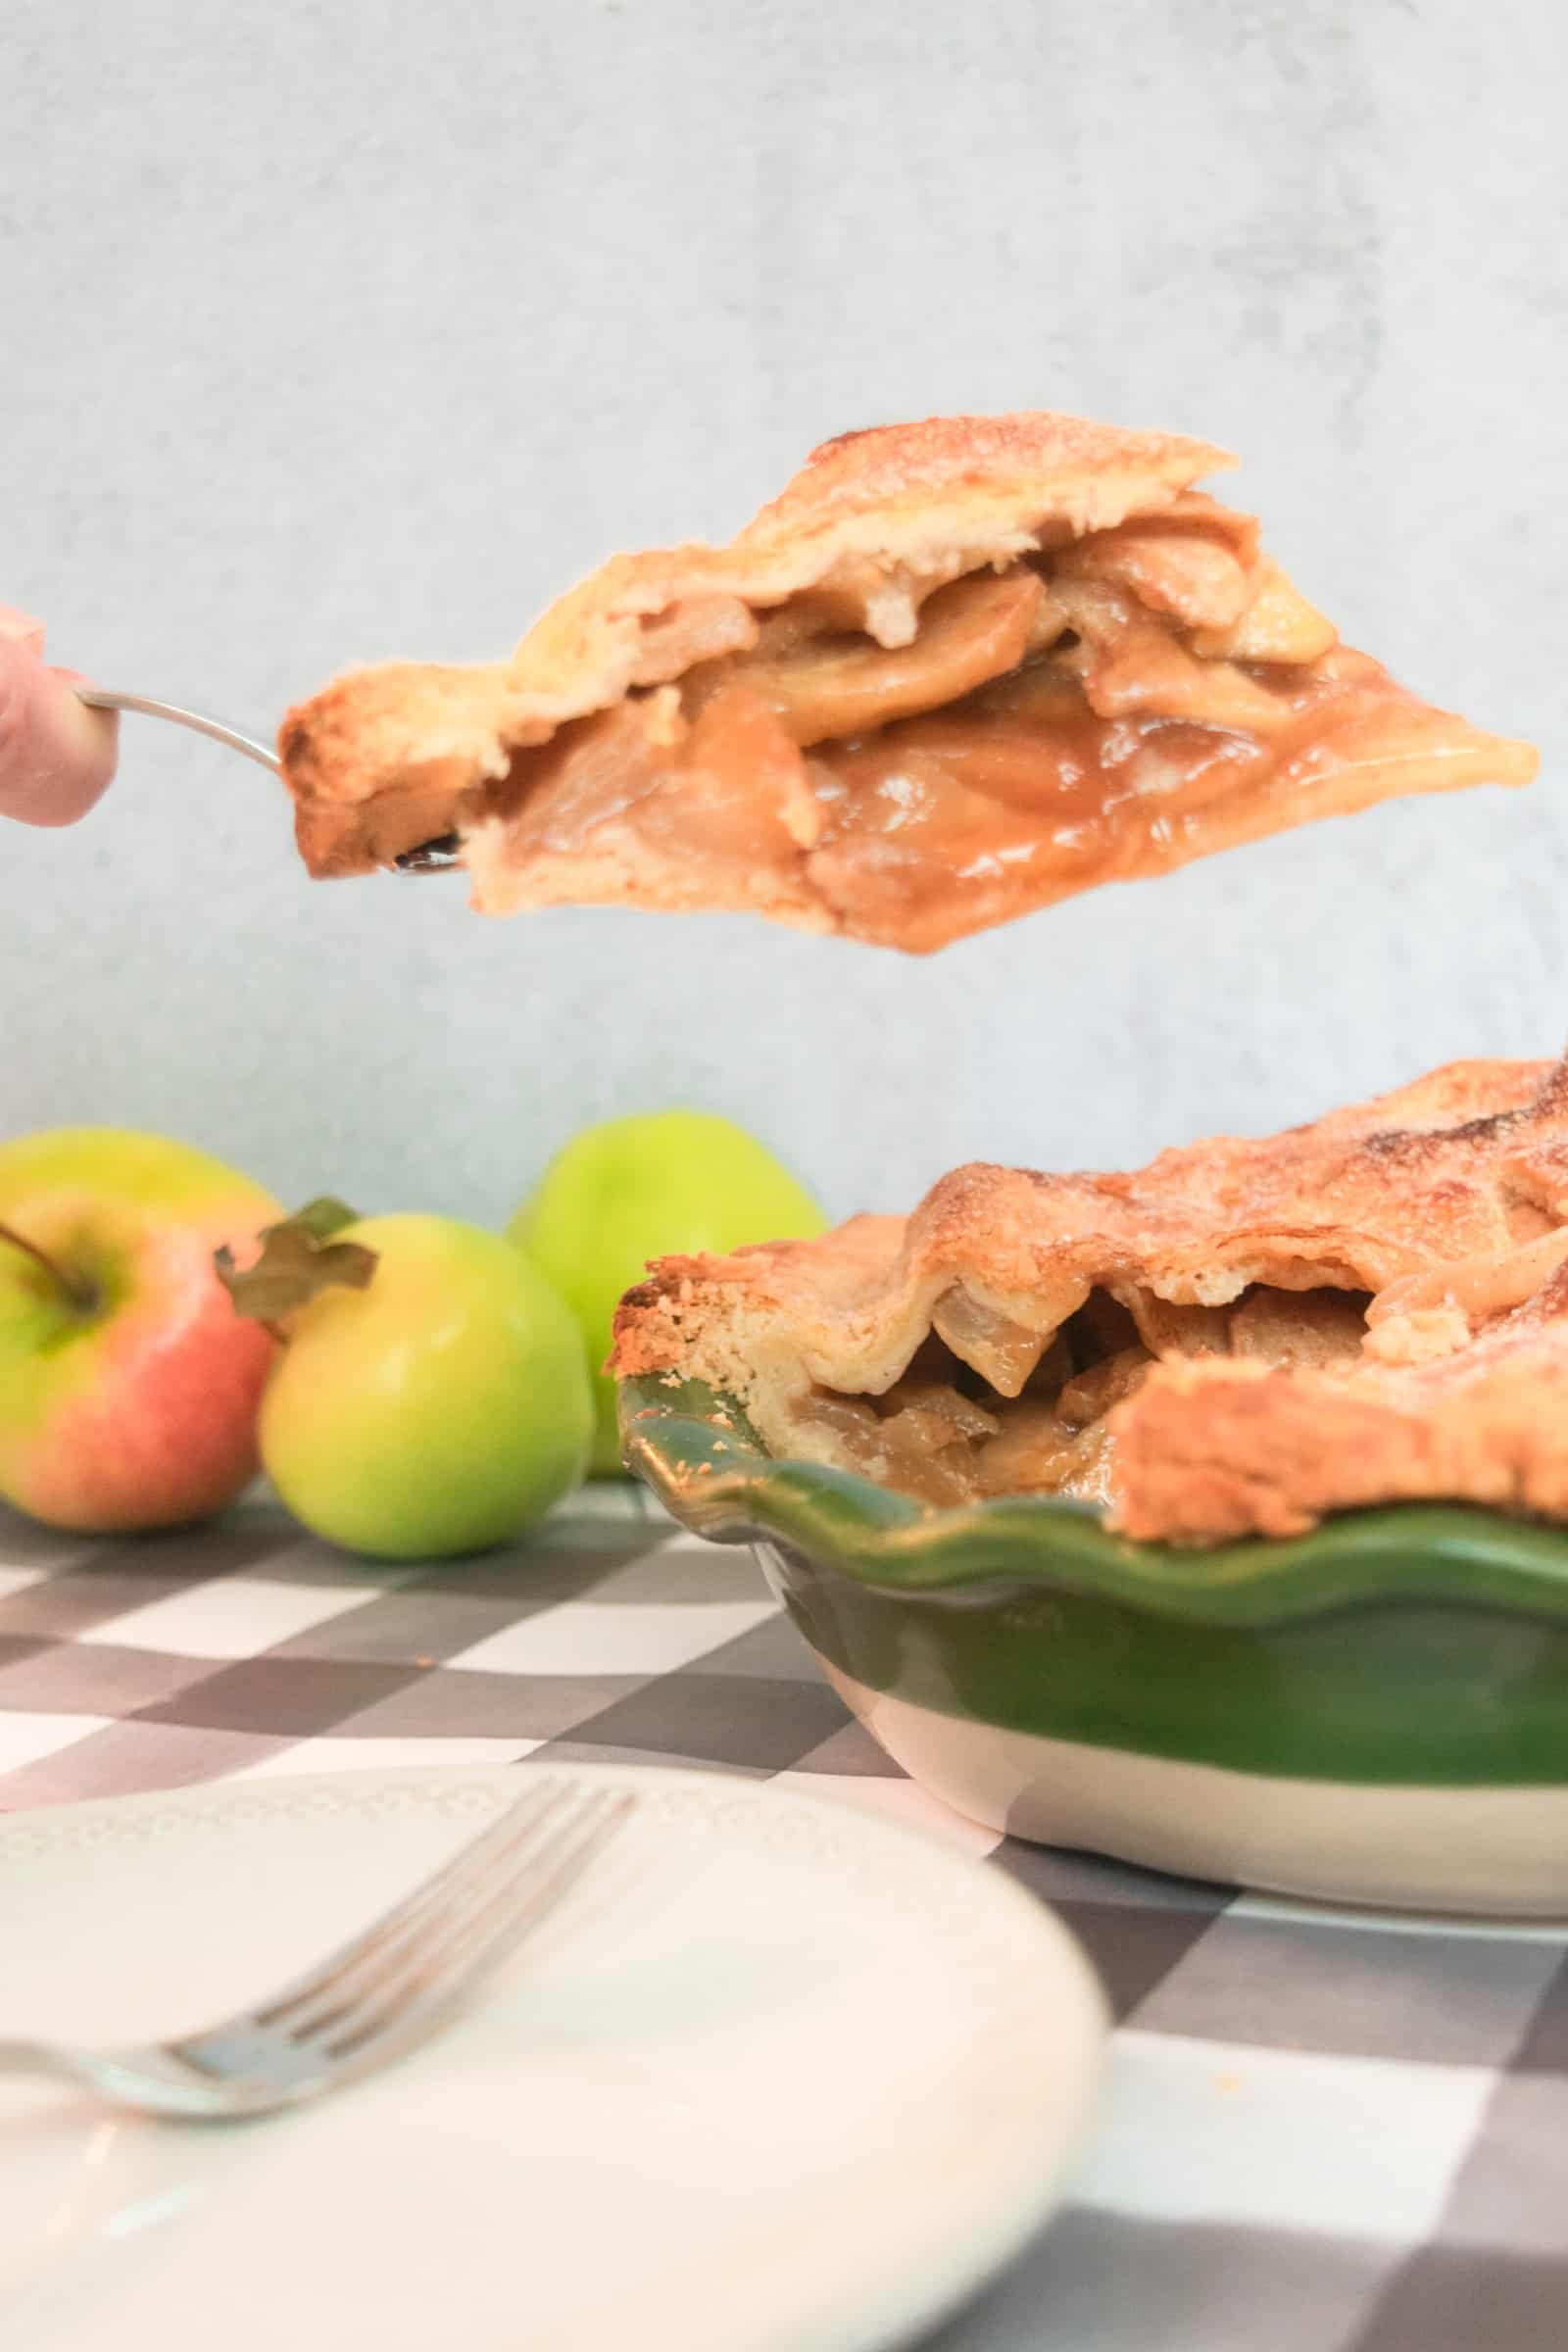 piece of apple pie being served out of a green ruffled edge pie plate with some apples in the background and a gray and white tablecloth and an empty white plate and fork